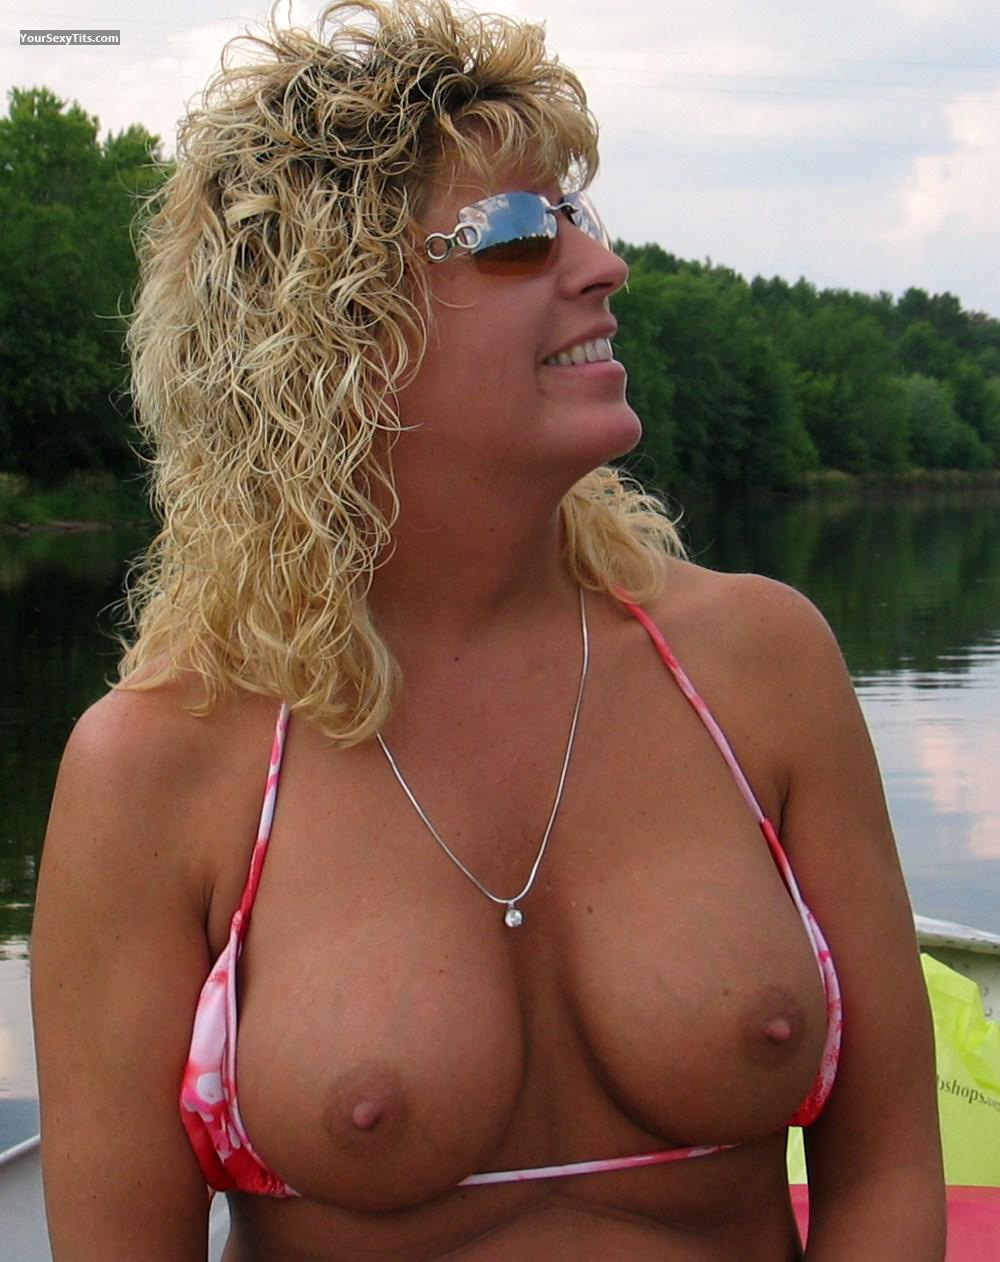 My girl from wisconsin 7